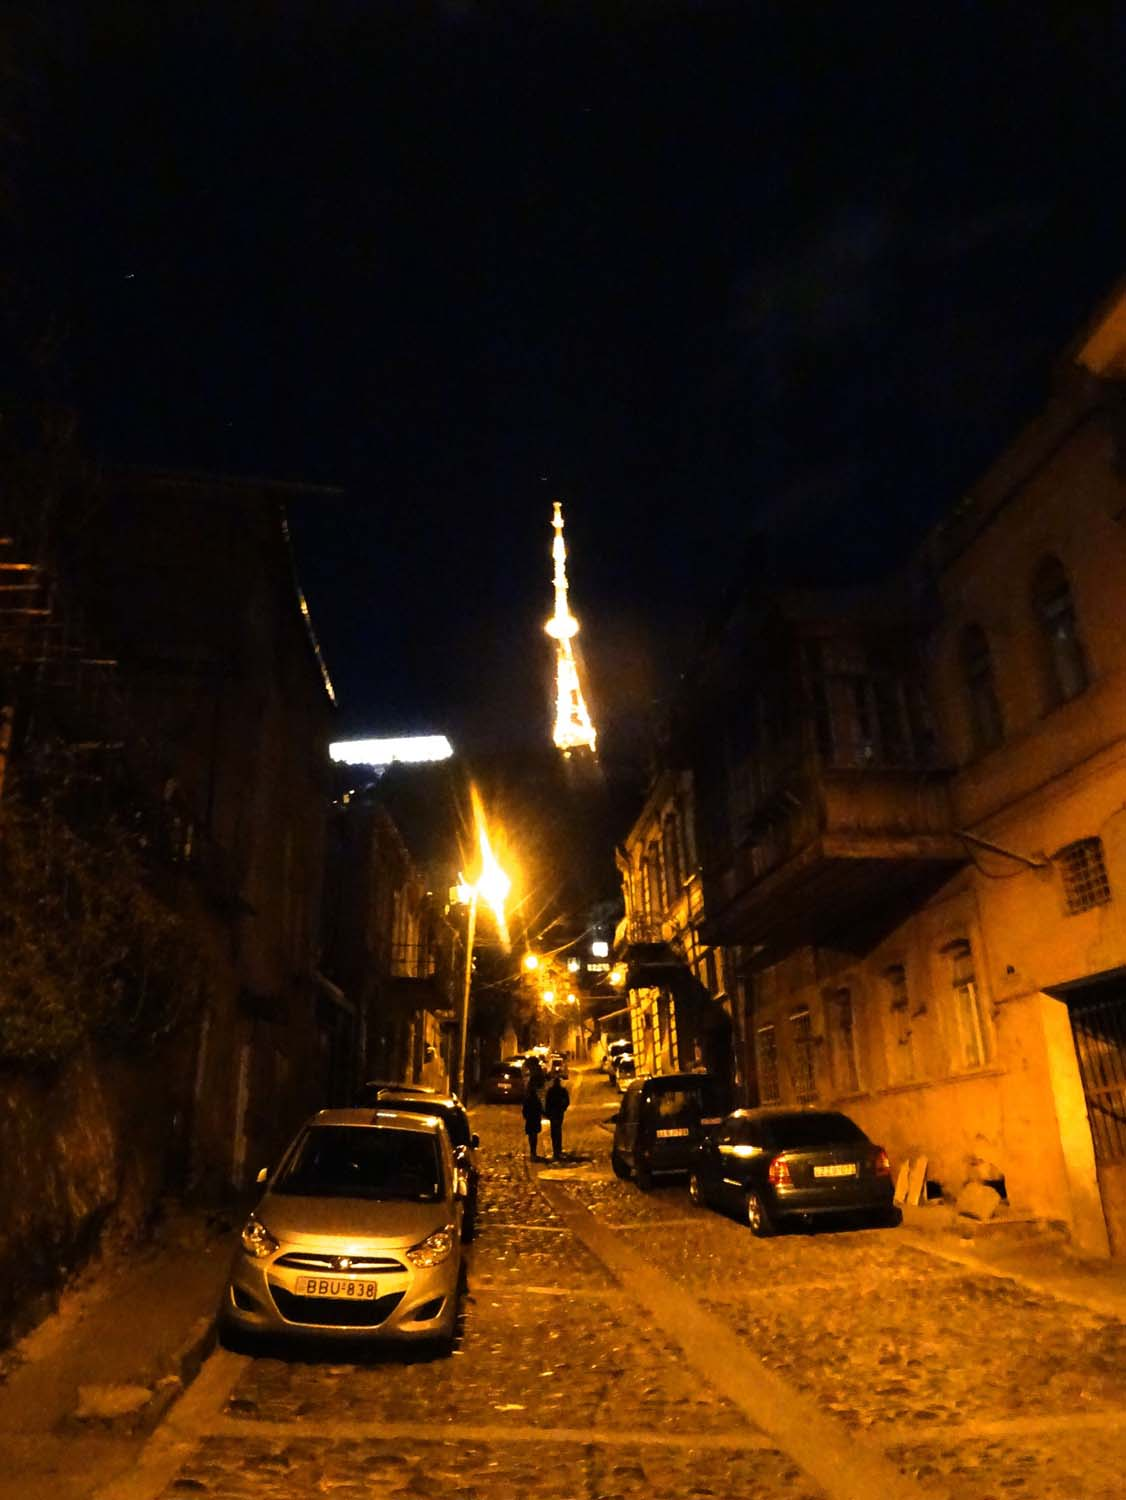 Tim and Martina walking through the ancient streets of Tbilisi on their way home